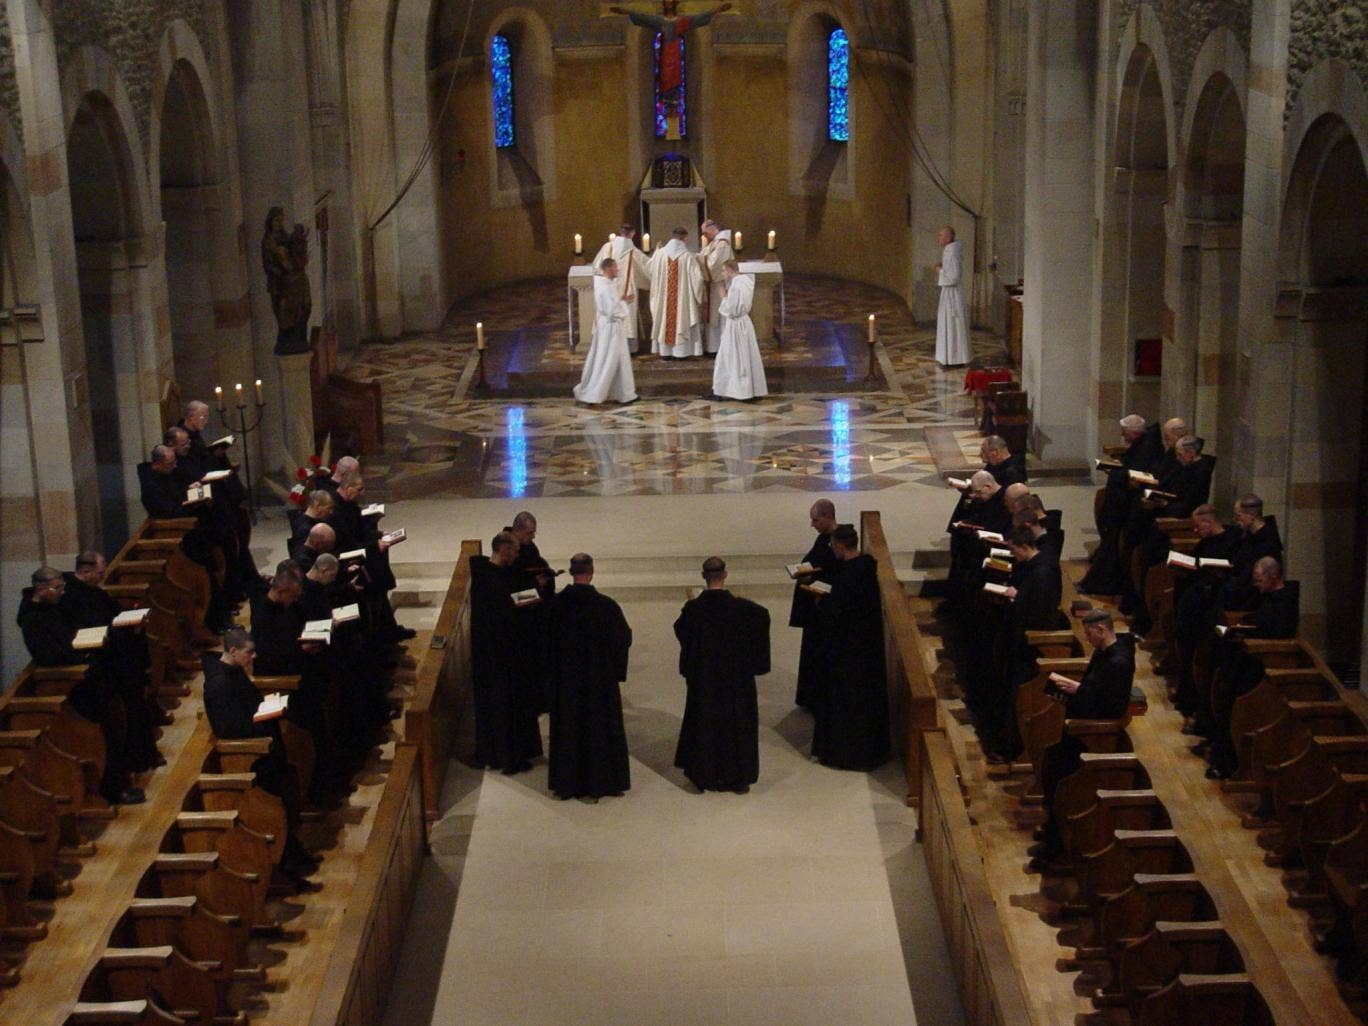 Mysterious ways: The Latin chants of French Benedictine monks at prayer can now be enjoyed on the internet